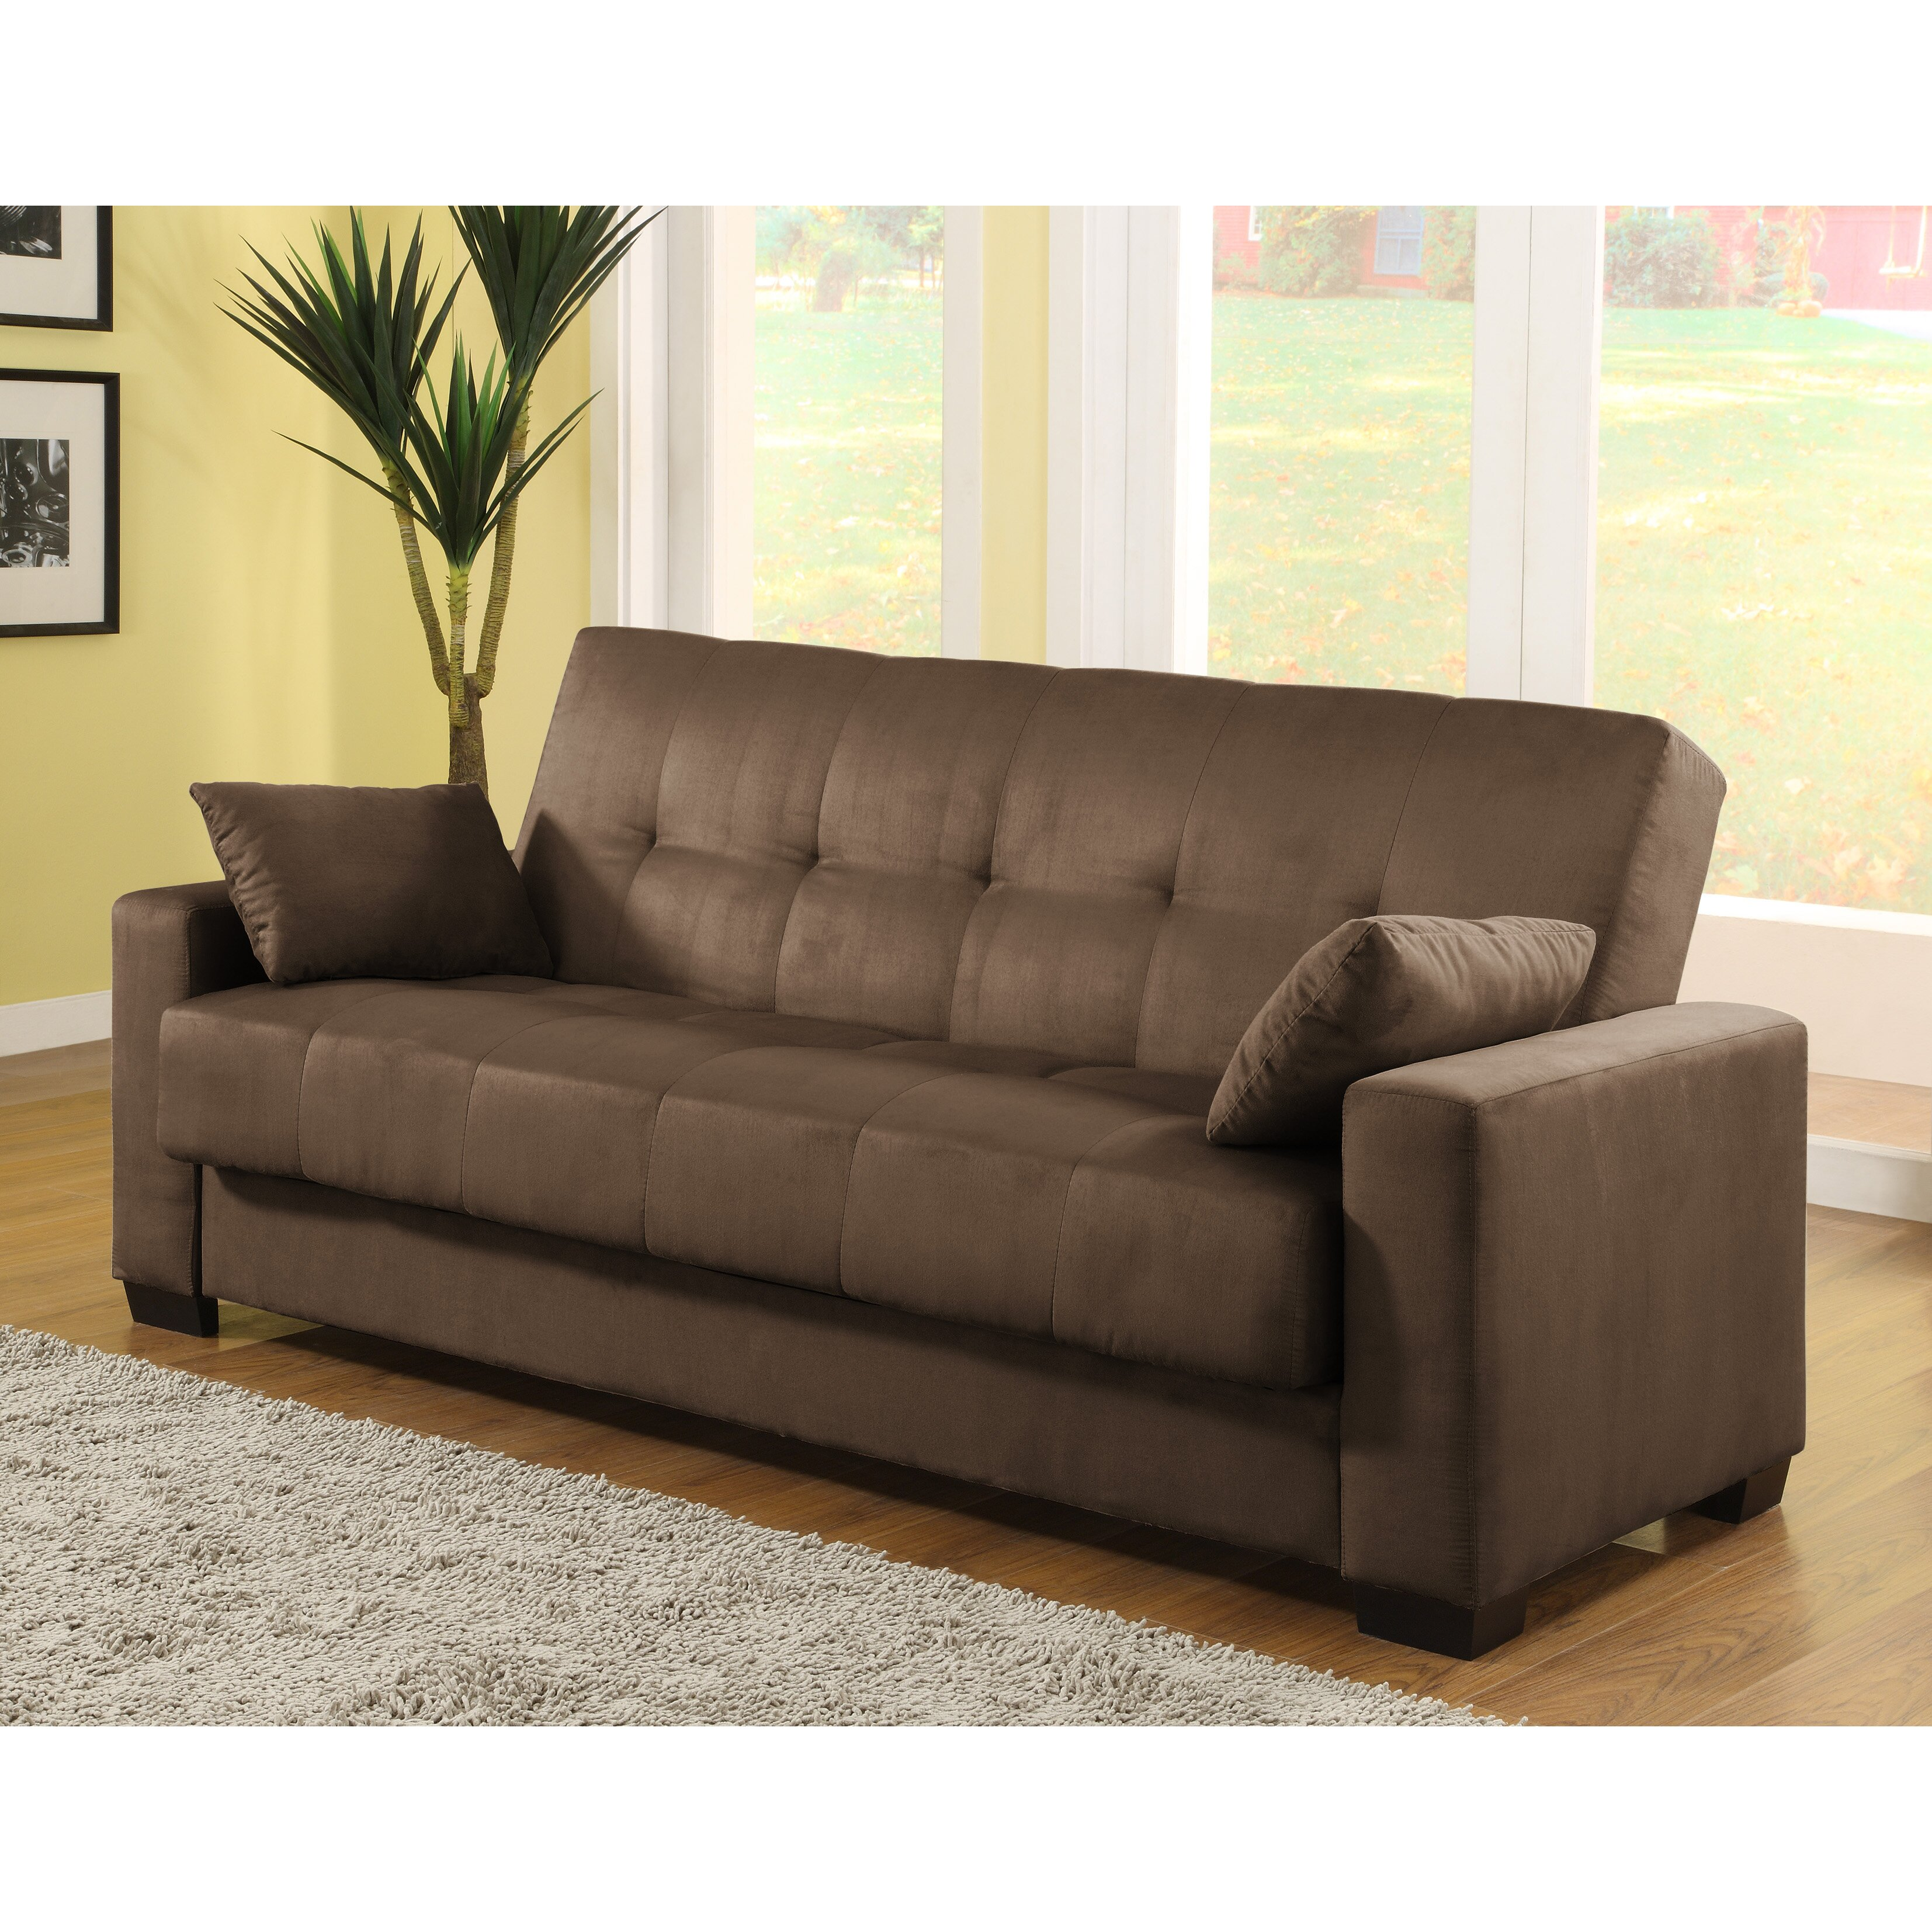 LifeStyle Solutions Casual Convertibles Sleeper Sofa